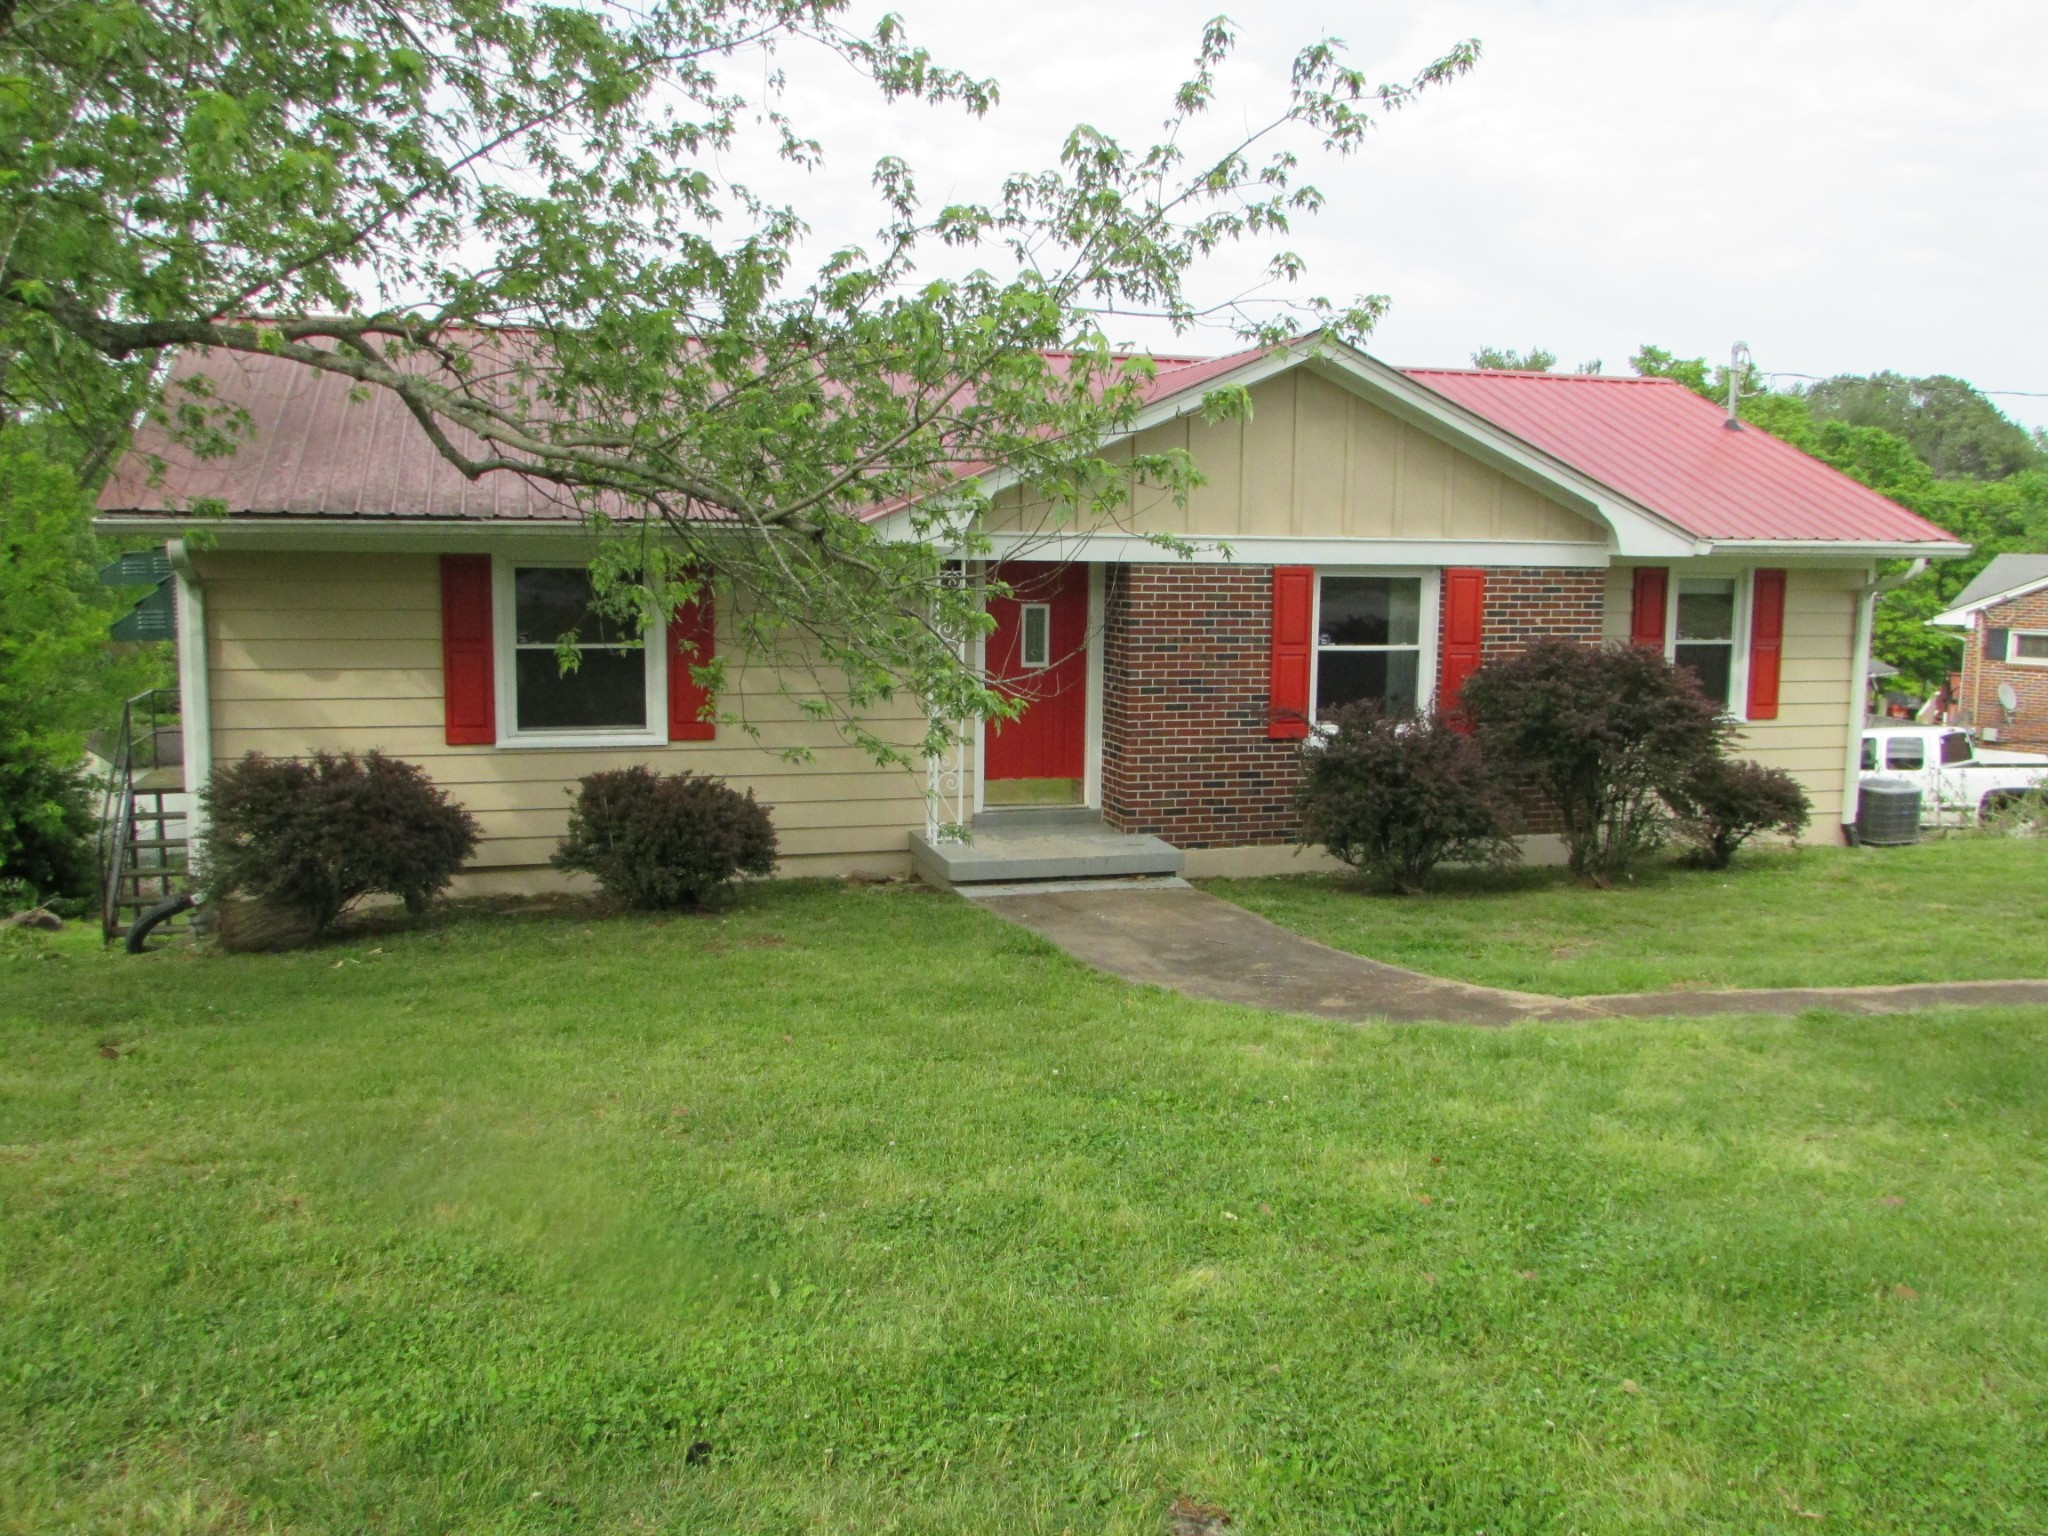 ABSOLUTE AUCTION! Saturday May 30th at 10:00 a.m.  3 Bedroom home with living room, eat in kitchen, dining room and bath.  Full basement with one car garage and bath. Recently improved with refinished hardwood floors, paint, metal roof, and replacement windows. Good deep lot.